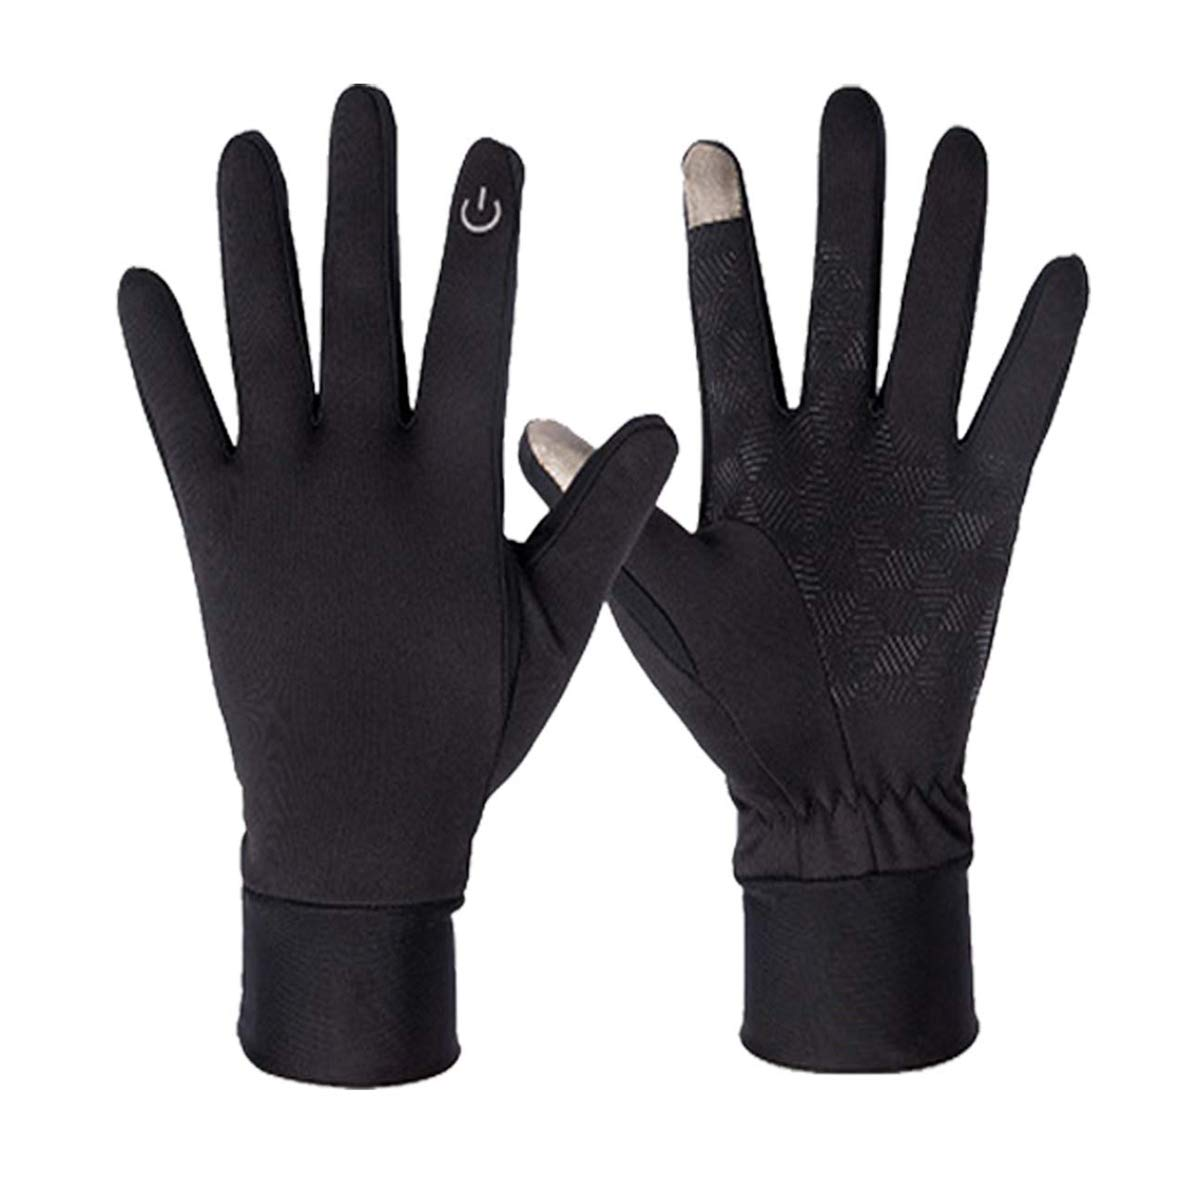 Running Sports Gloves,Lightweight Touchscreen Cycling Windproof Gloves Men Women Riding Climbing Driving Outdoor Anti-Slip Gloves for Winter Early Spring Or Fall